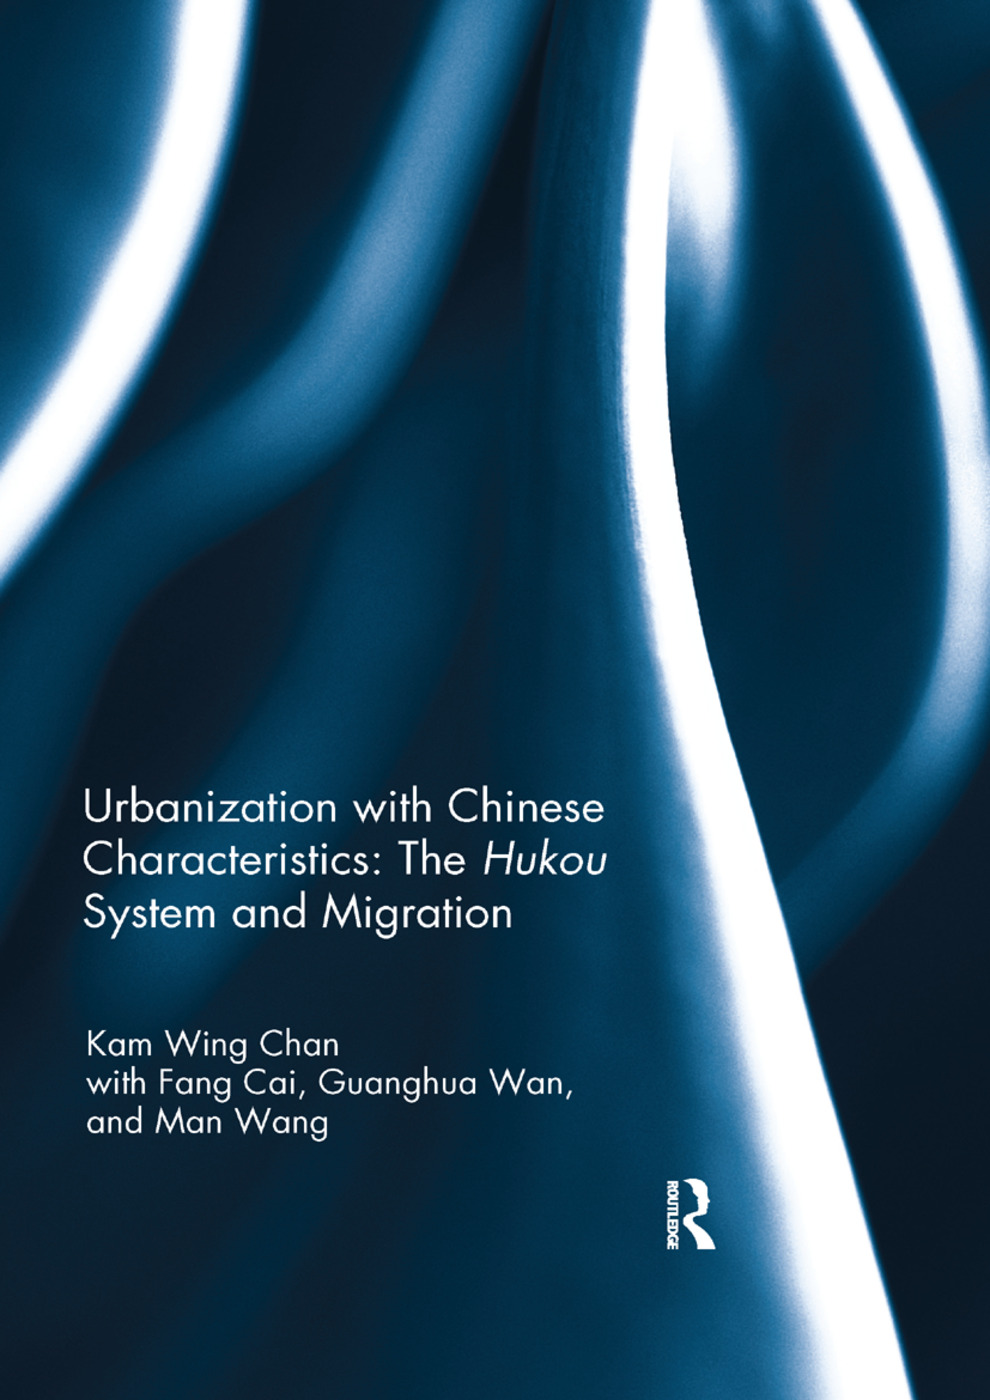 Urbanization with Chinese Characteristics: The Hukou System and Migration book cover